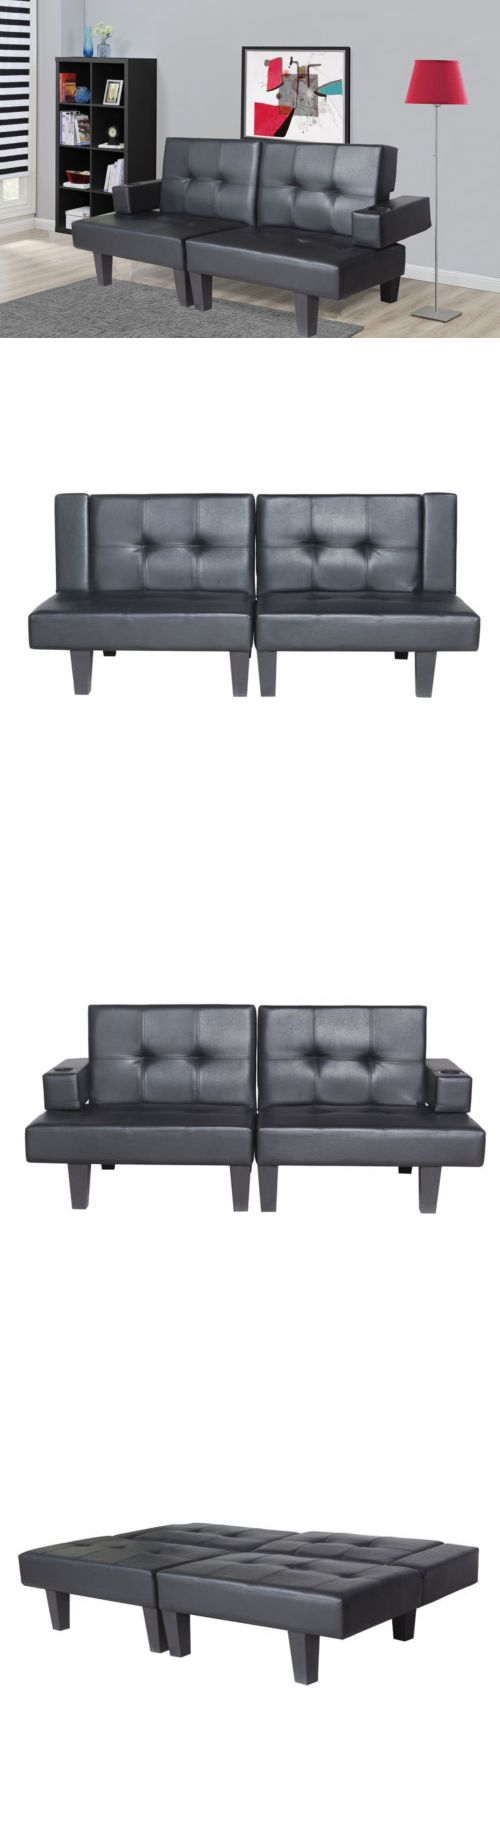 Futons Frames and Covers 131579: Black Leather Fold Down Futon Sofa Bed Couch Sleeper Furniture Easy Adjustable -> BUY IT NOW ONLY: $175.99 on eBay!